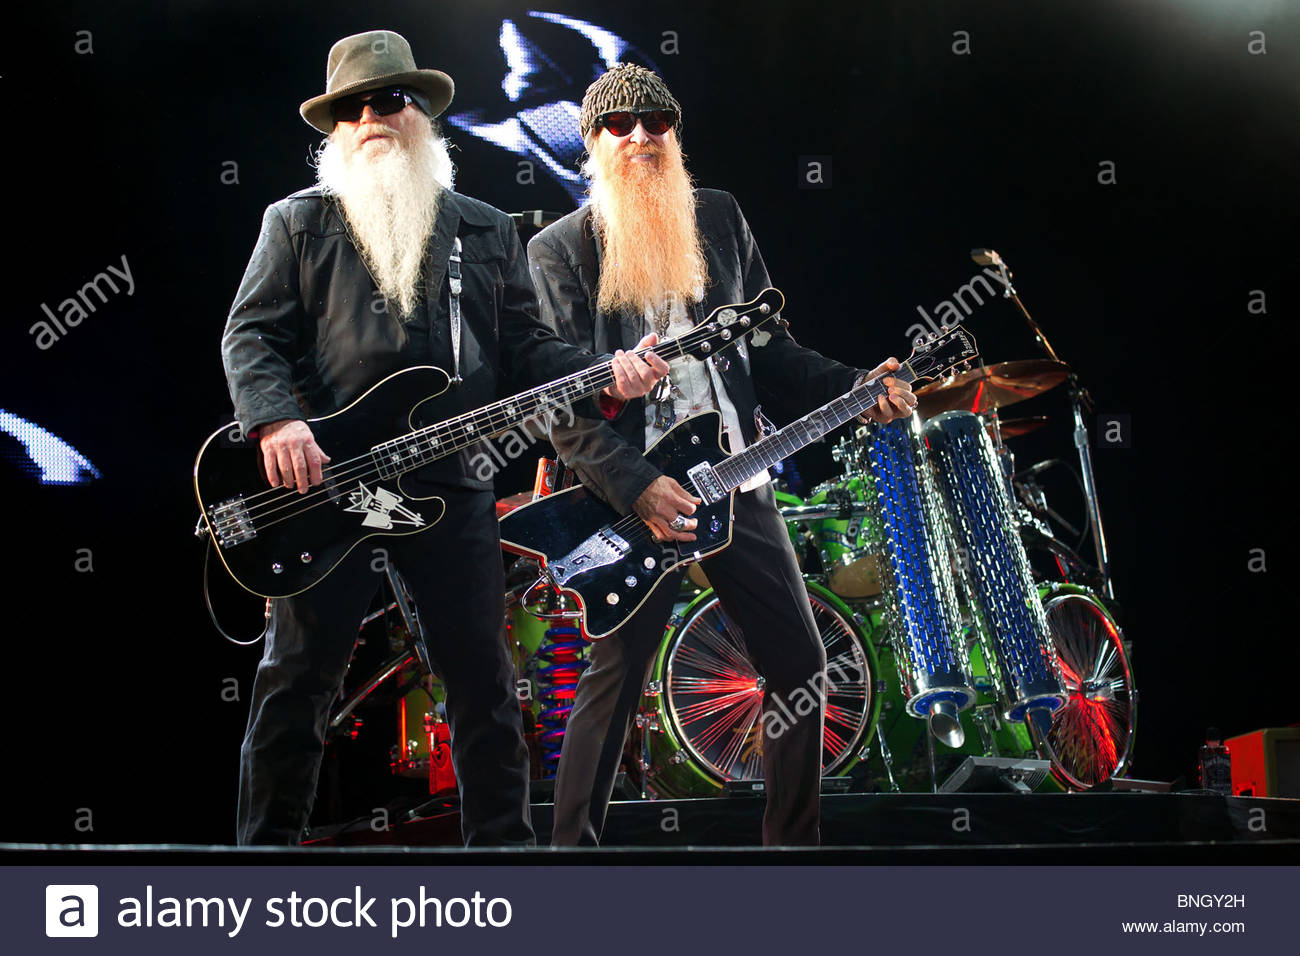 Texas blues rock band ZZ TOP performing live in july 2010 - Stock Image